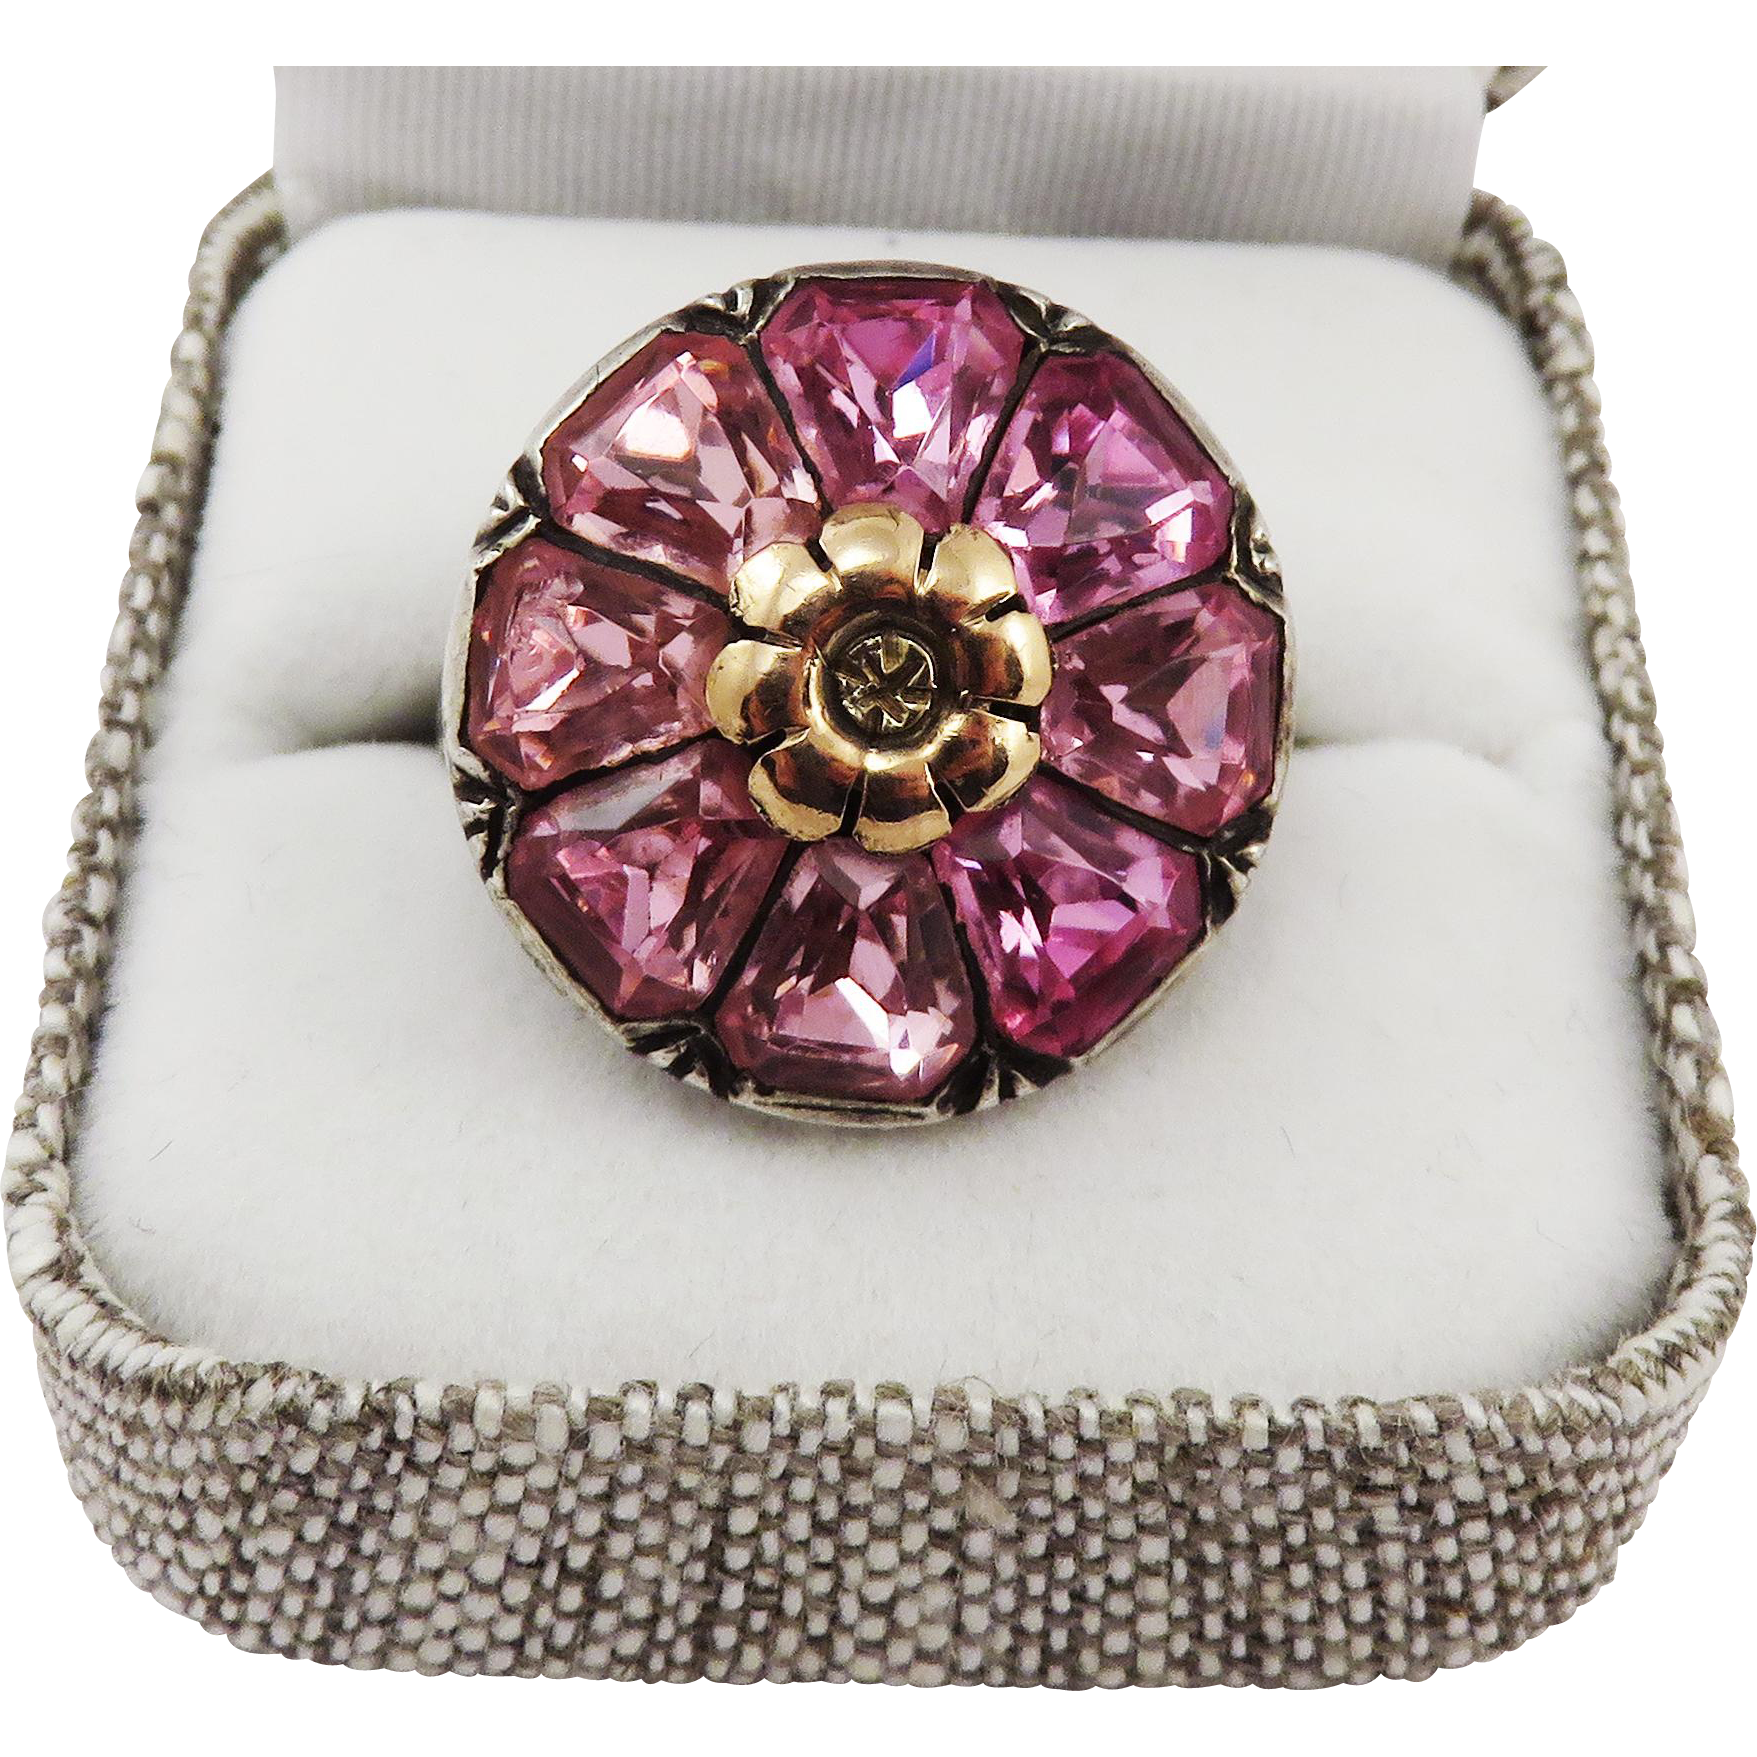 PRETTY IN PINK Pristine Late-Victorian Paste/9k/Sterling Ring, 7.67 Grams, c.1900!